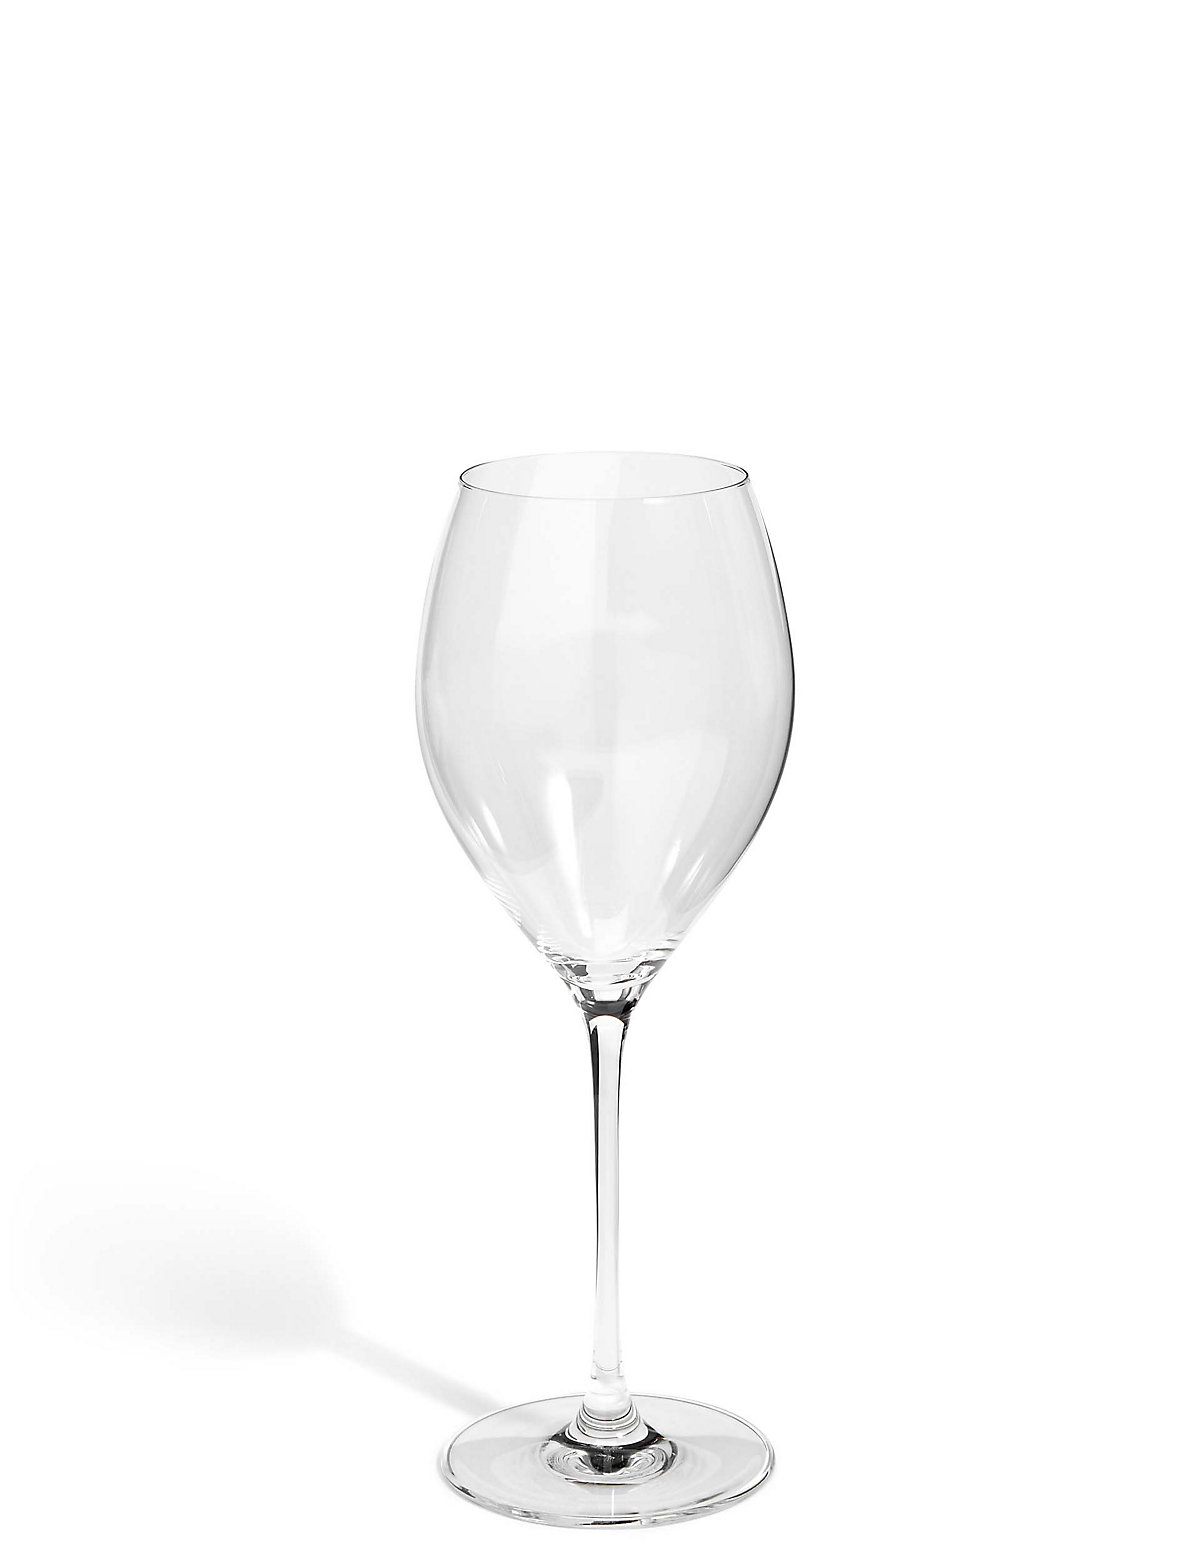 Sommelier 4 Pack White Wine Glasses